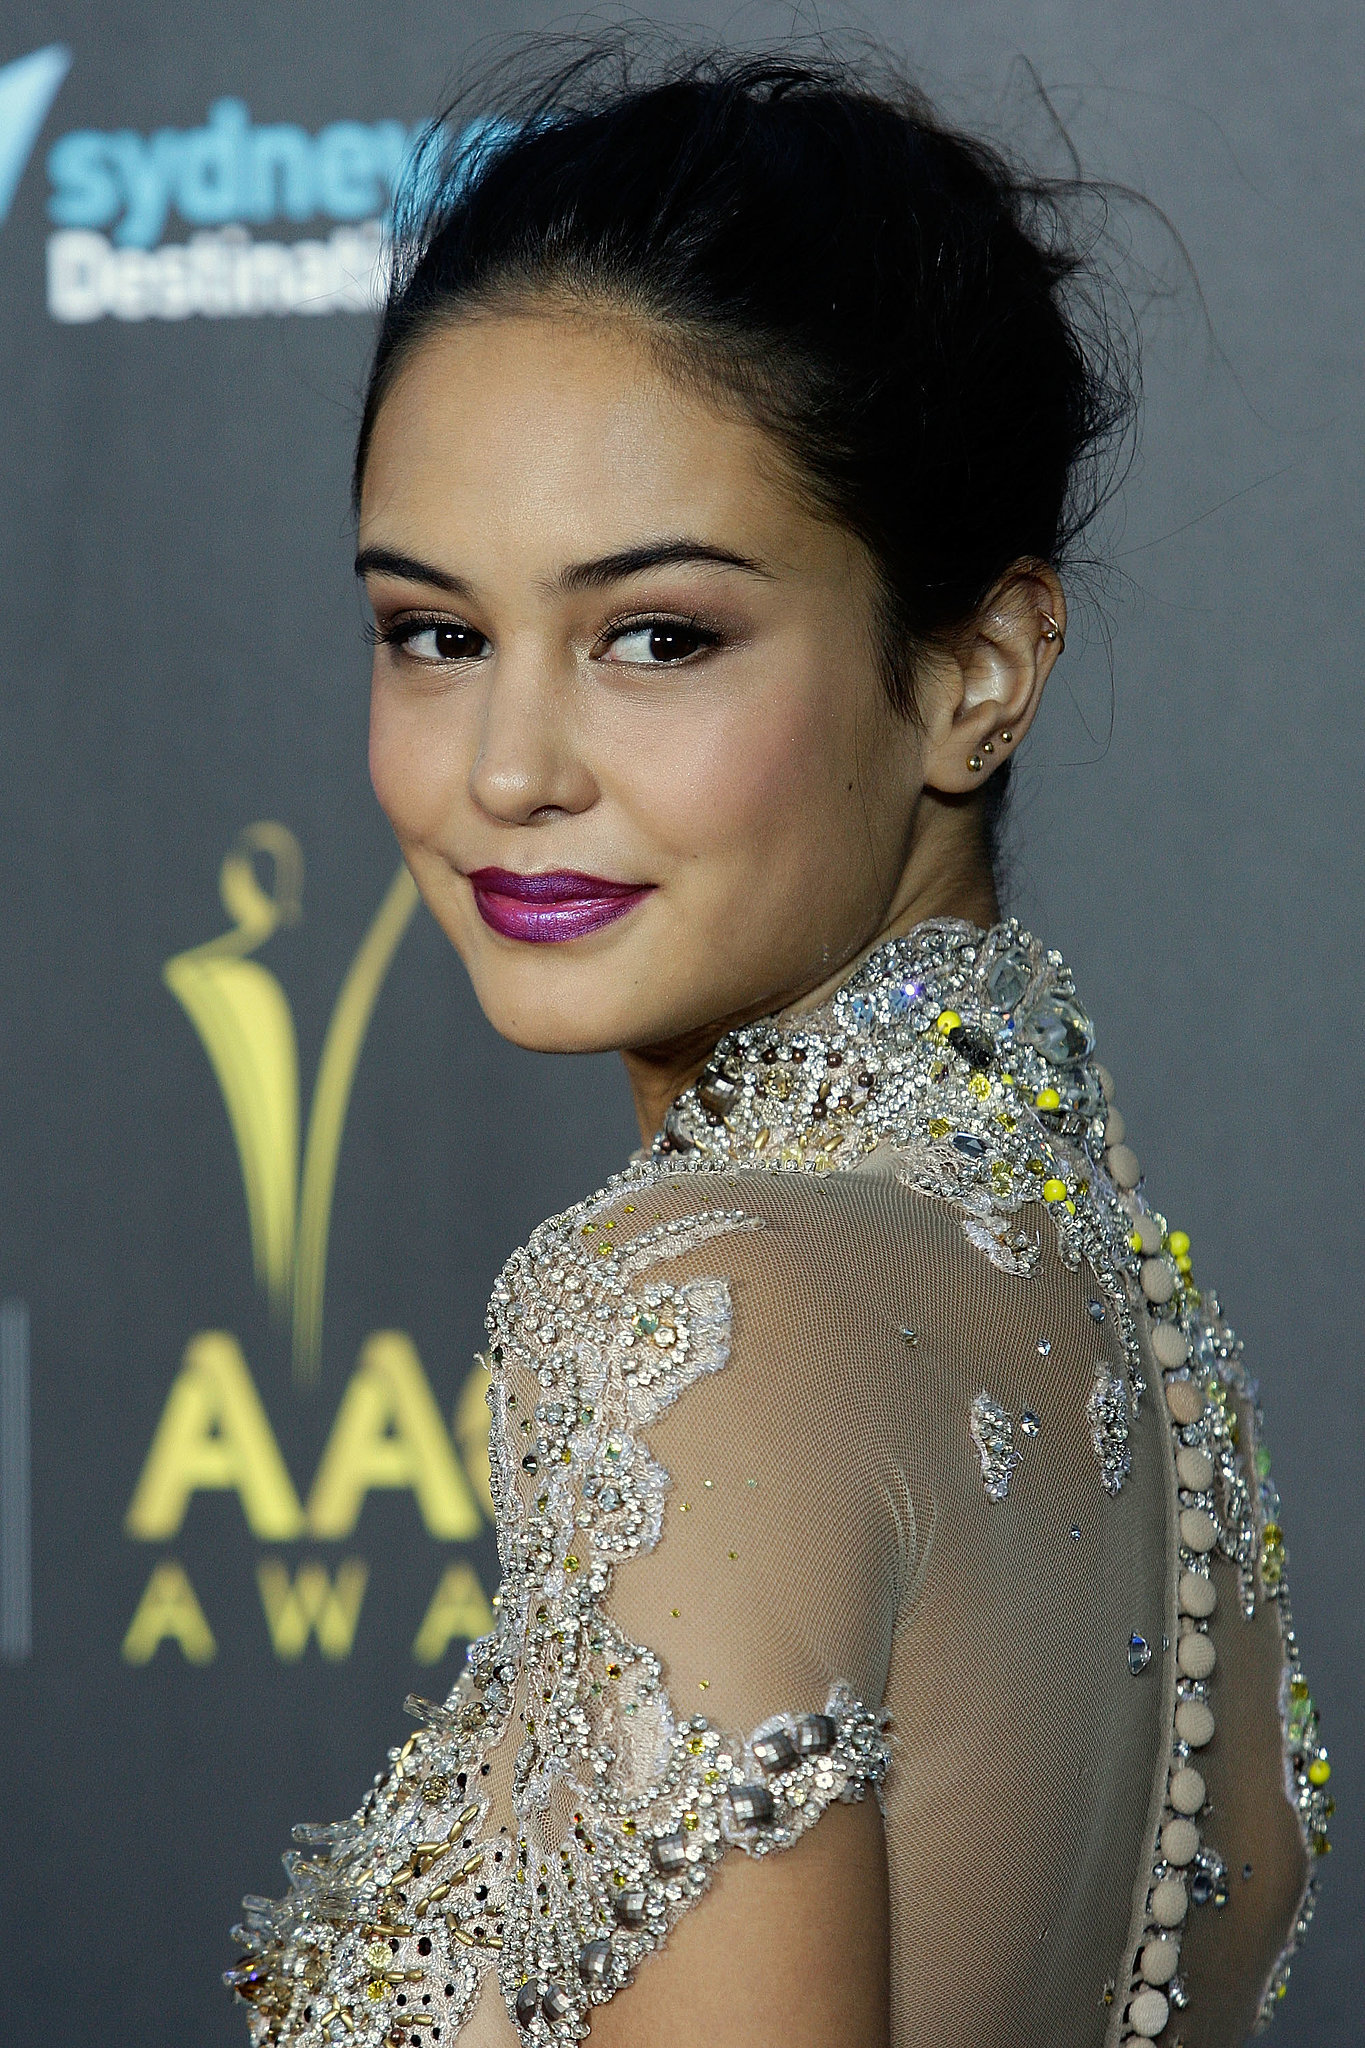 Courtney-Eaton-shows-us-exactly-how-amazing-new-season-lipcolour.jpg